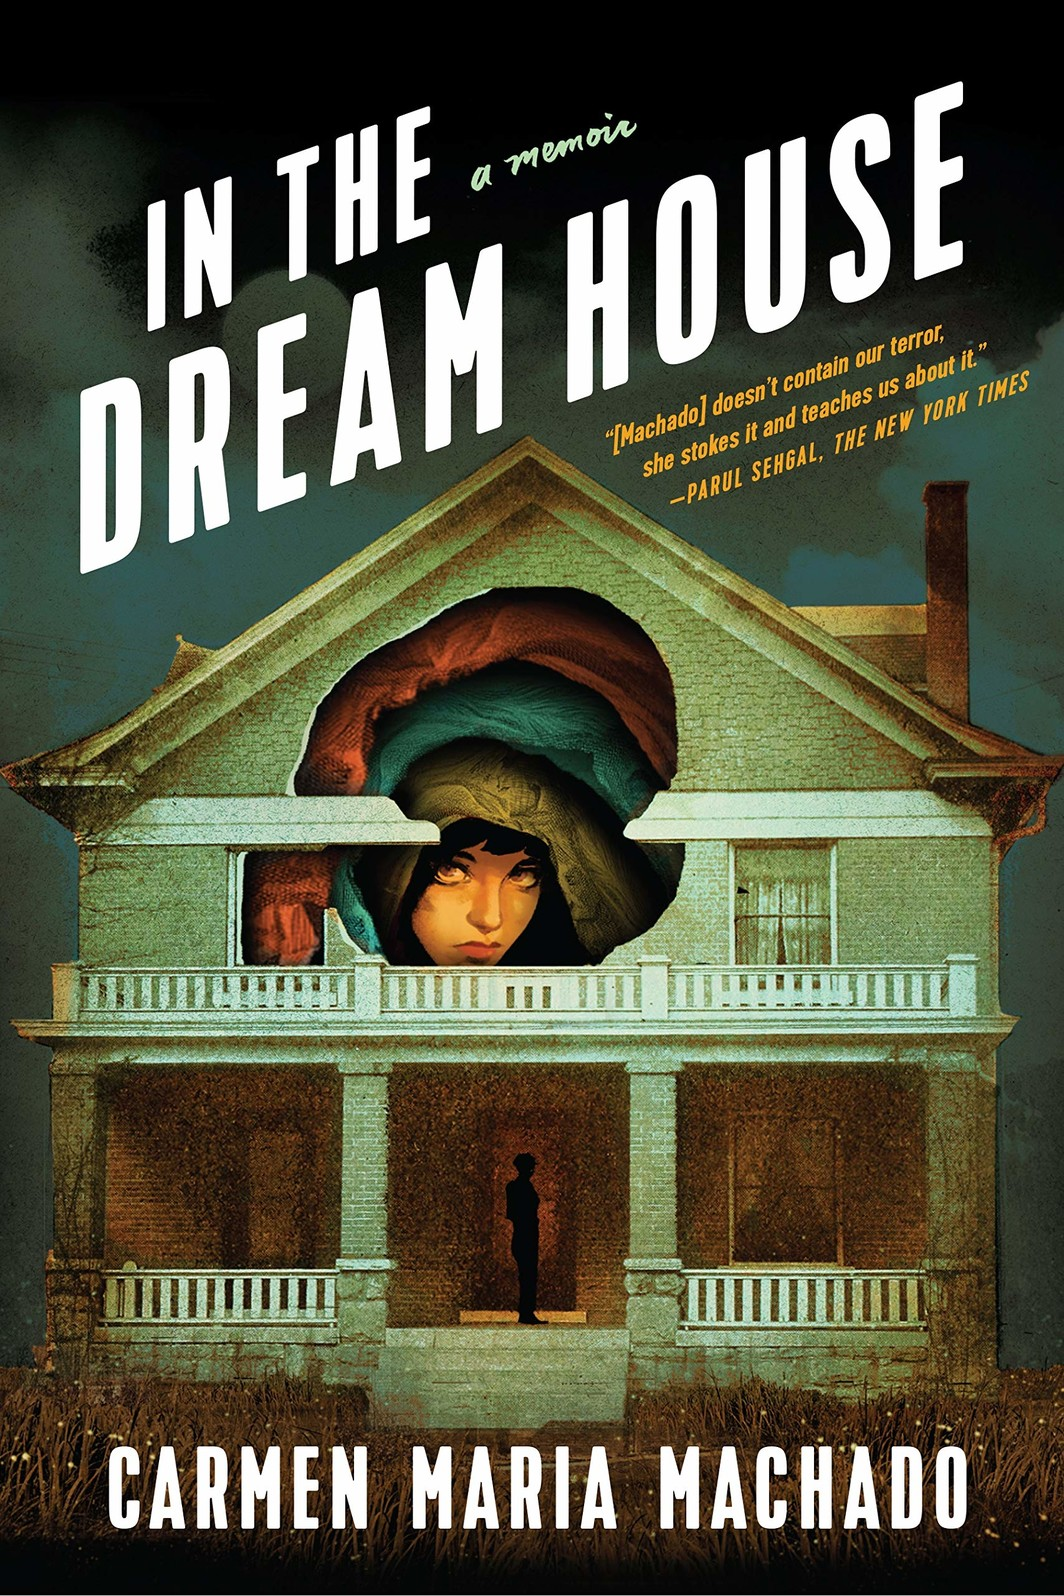 The cover of In the Dream House